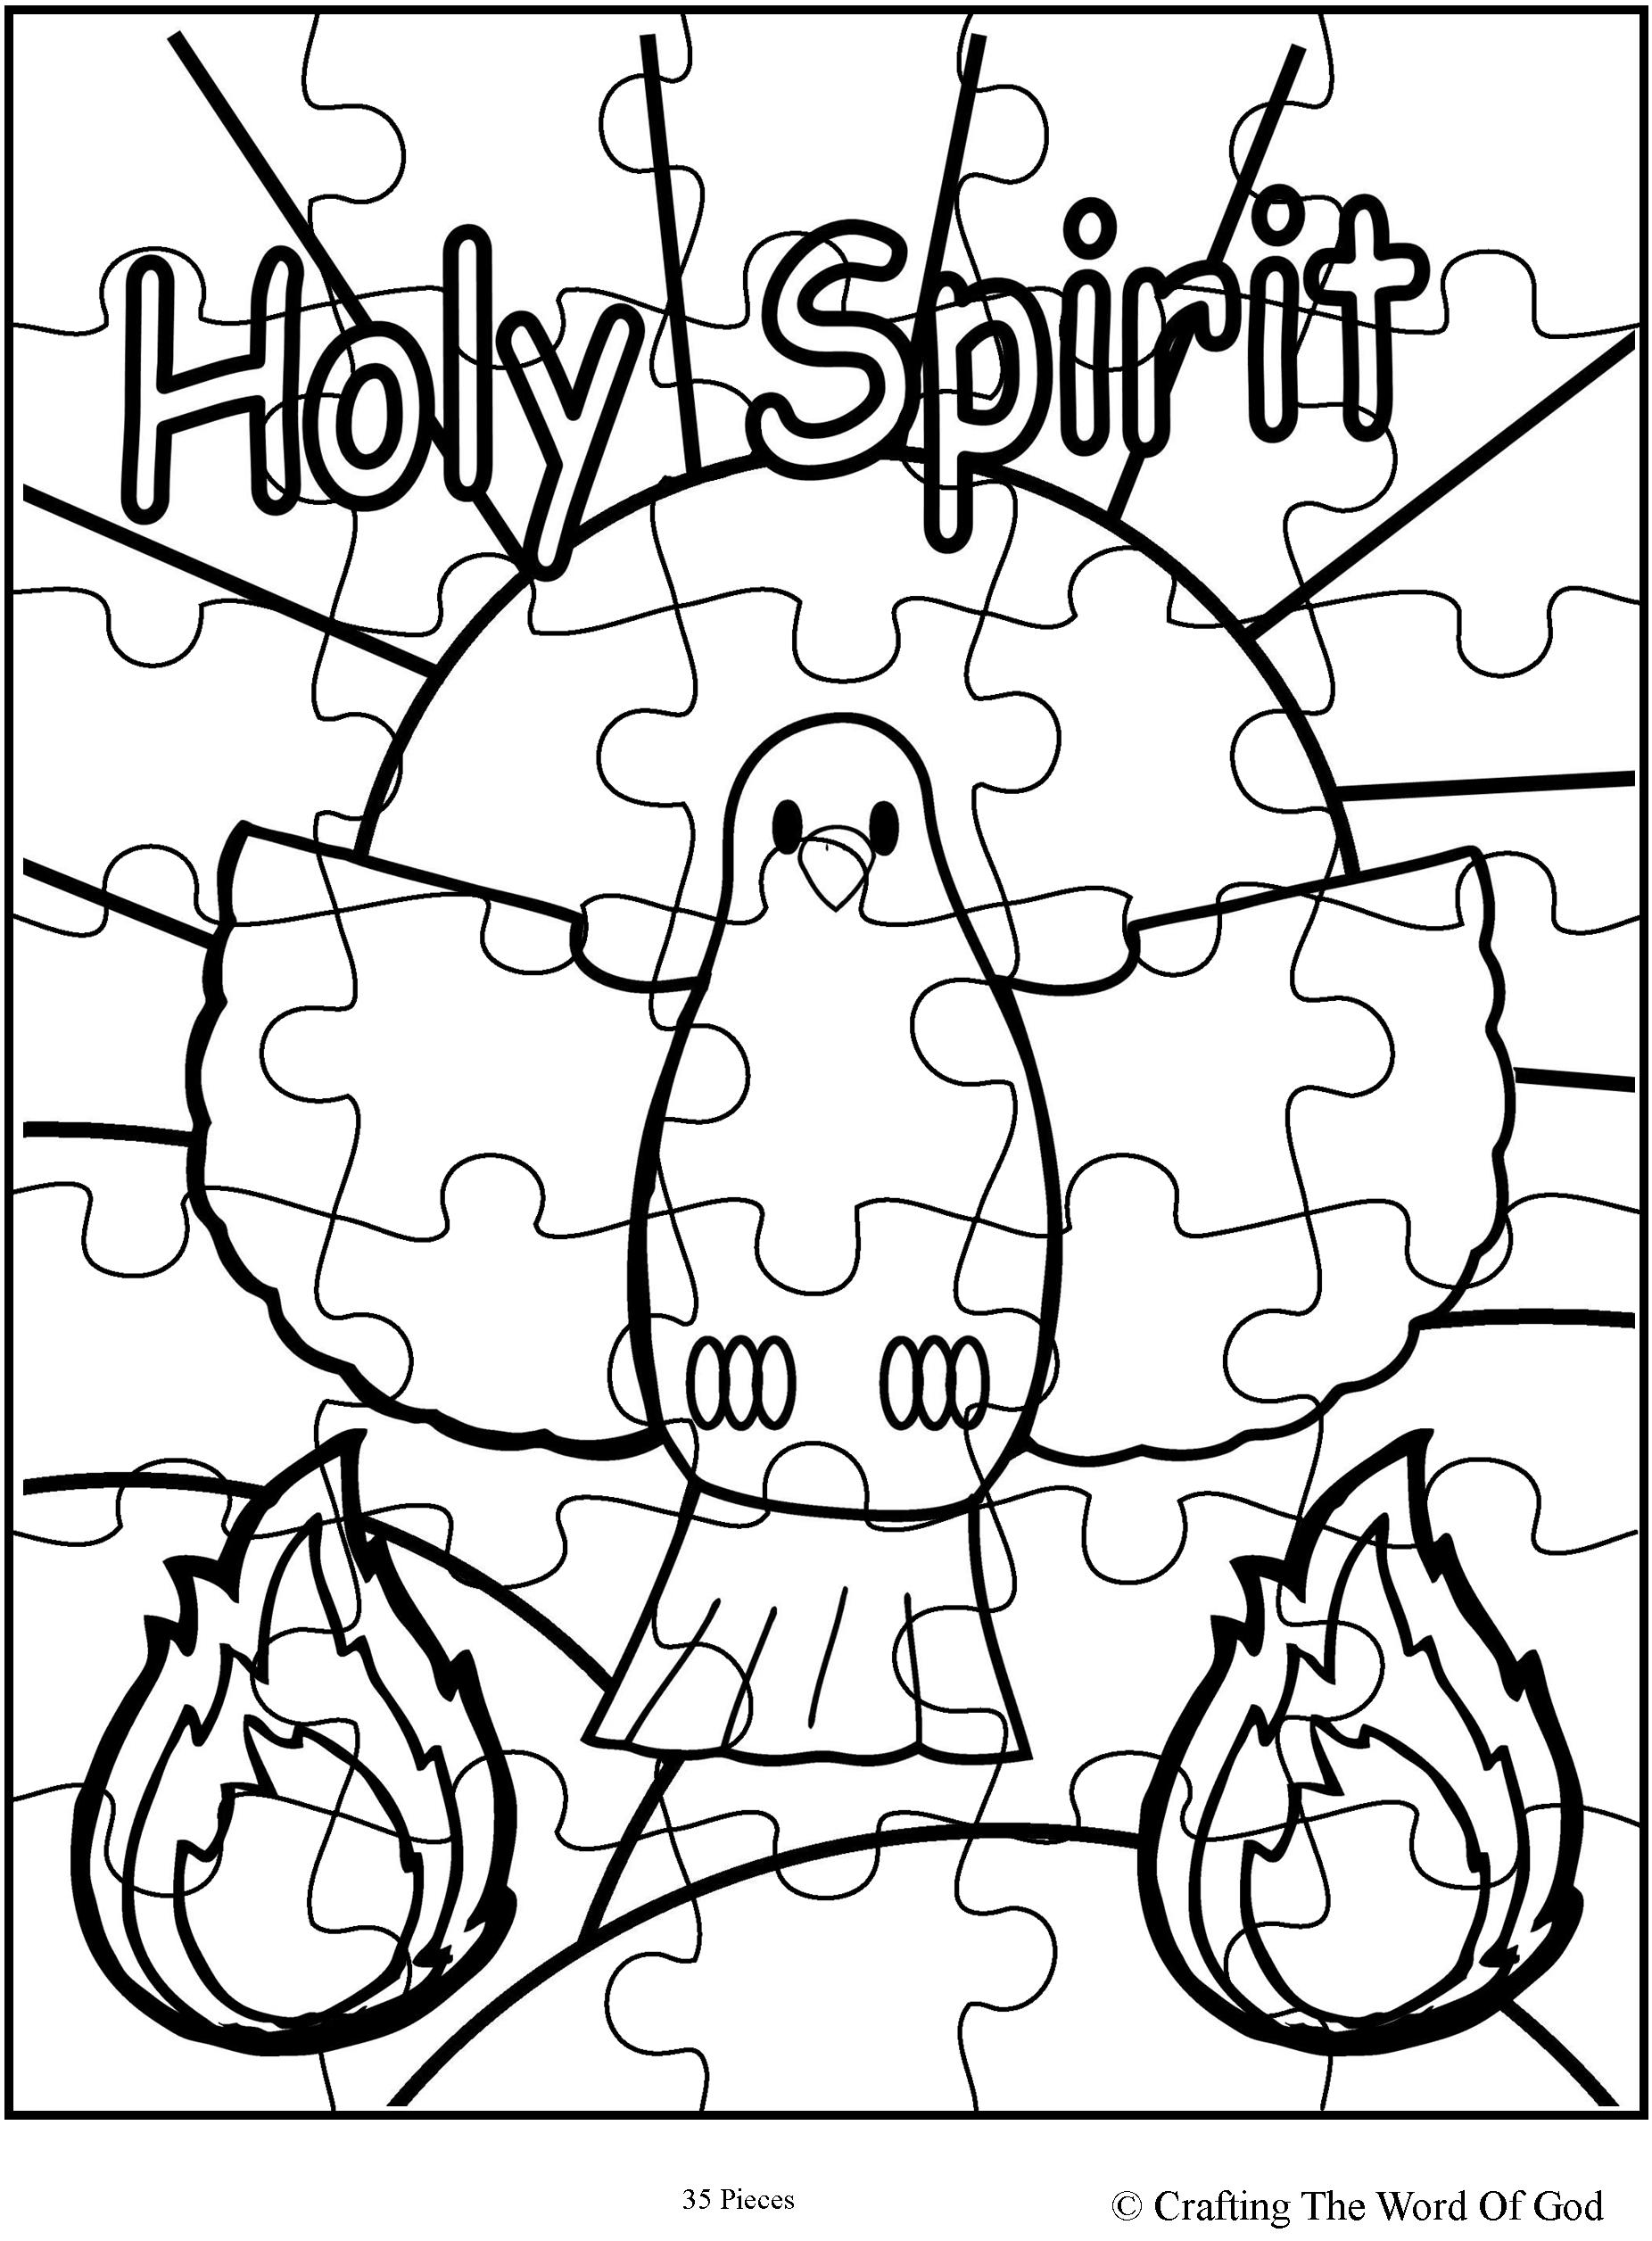 Holy Spirit 171 Crafting The Word Of God Holy Spirit Coloring Pages